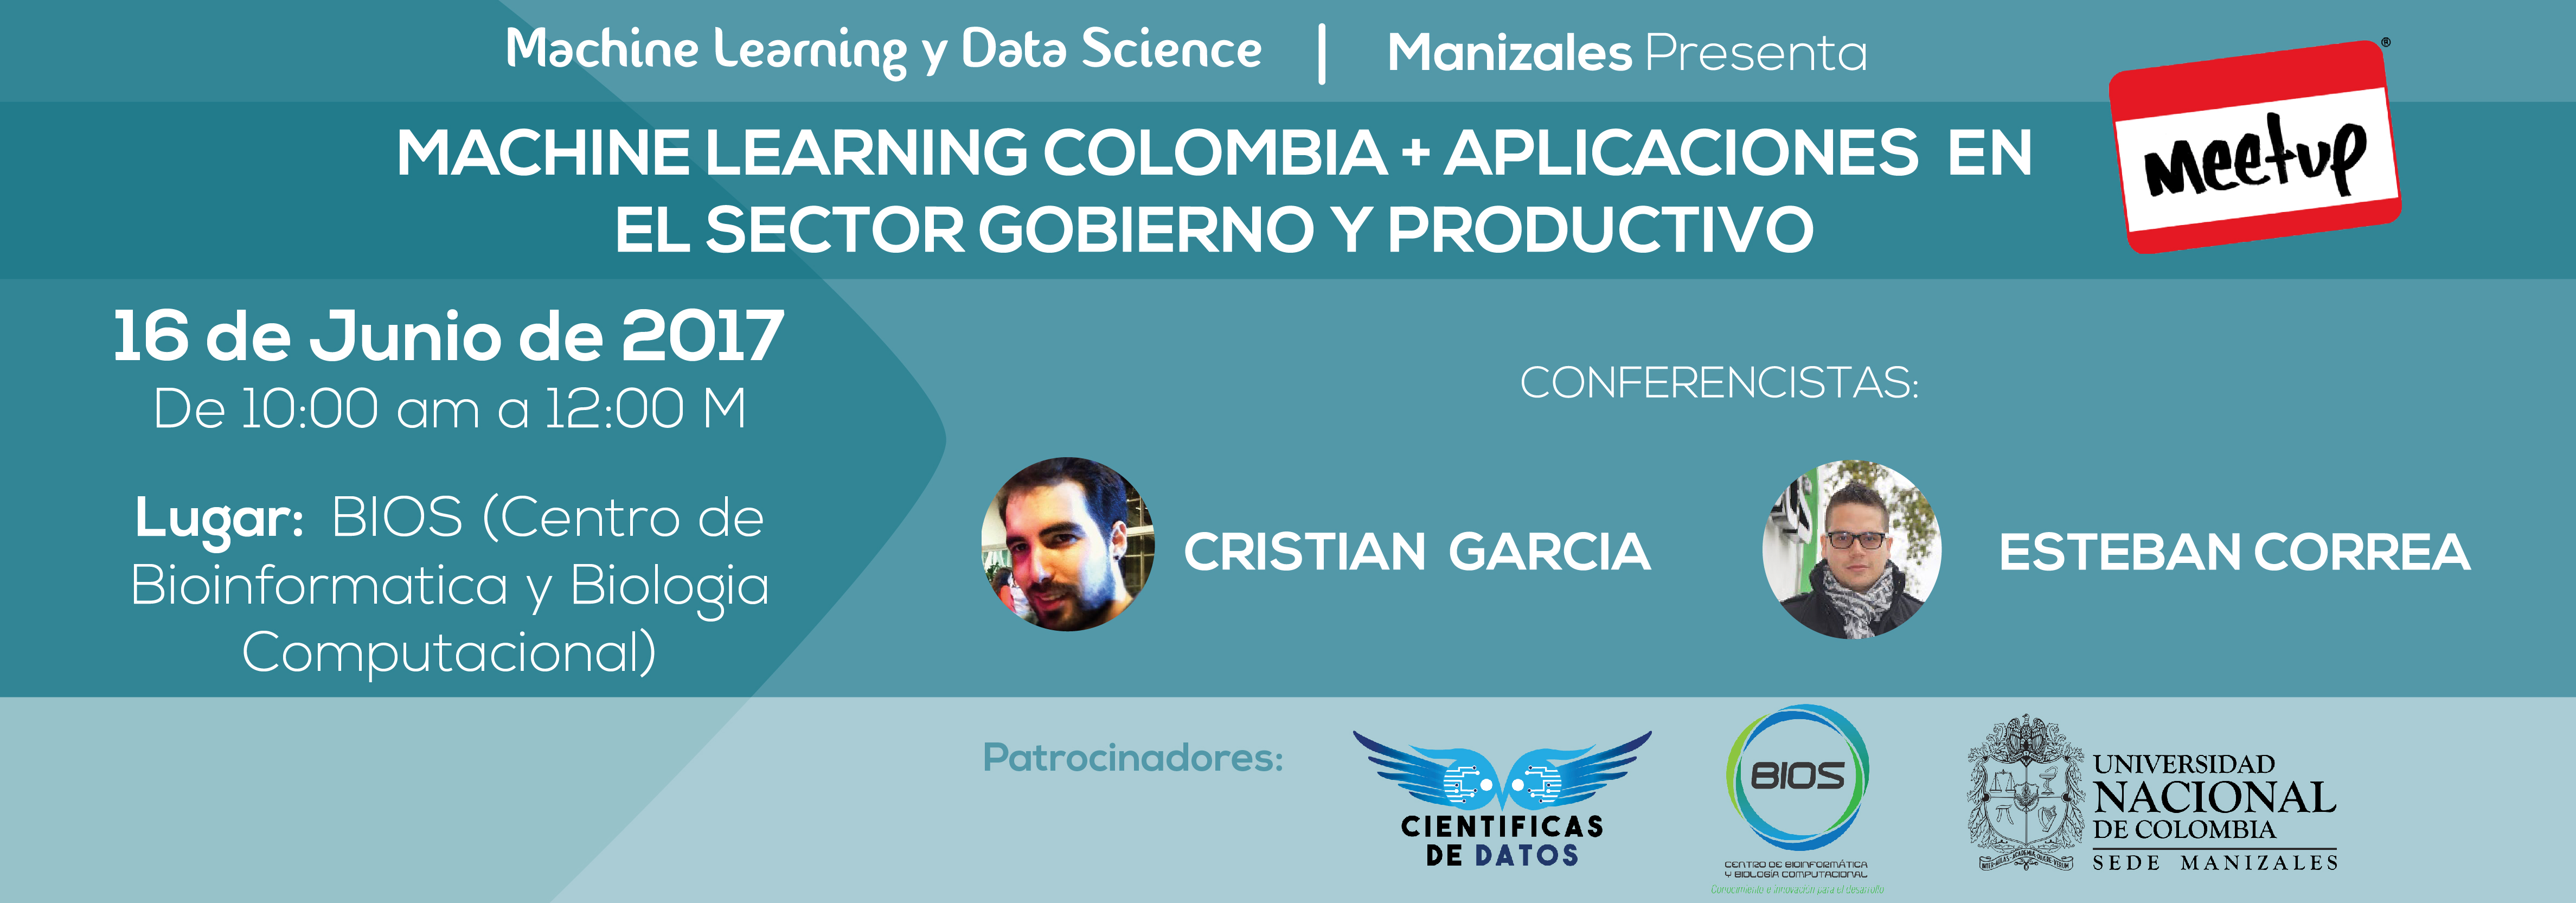 Banner_machine_learning_manizales